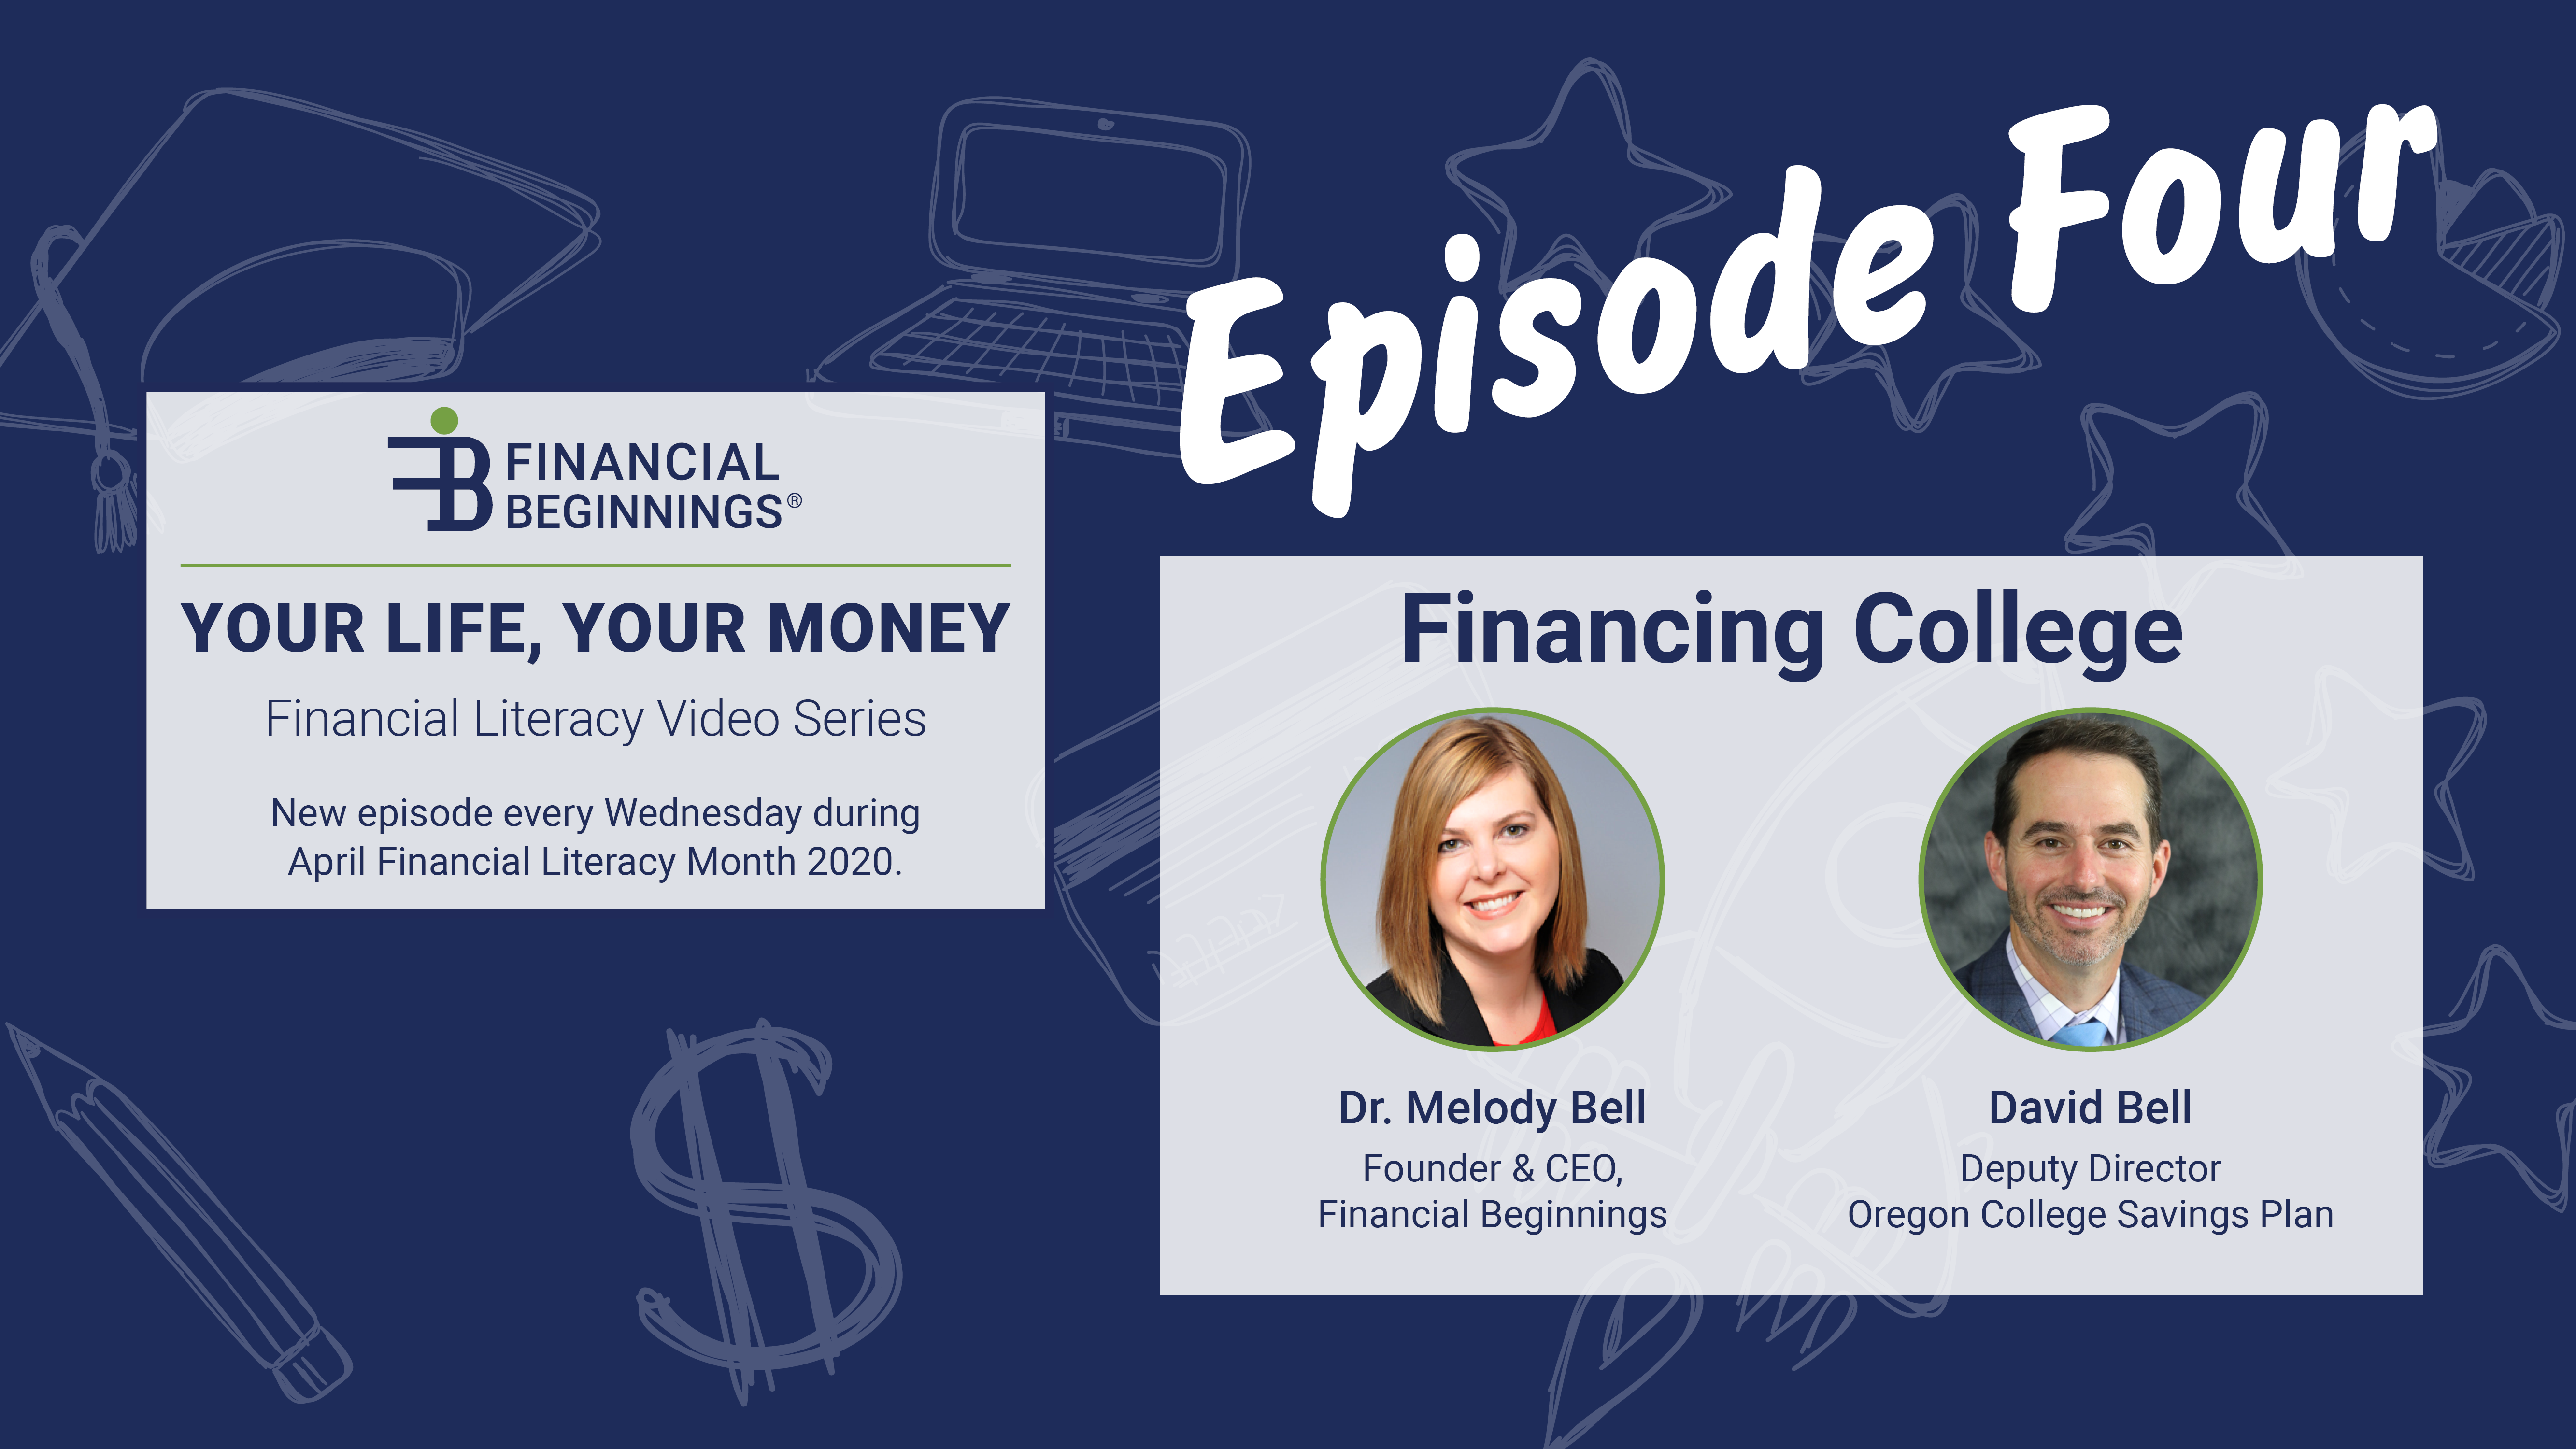 Episode 4: Financing College